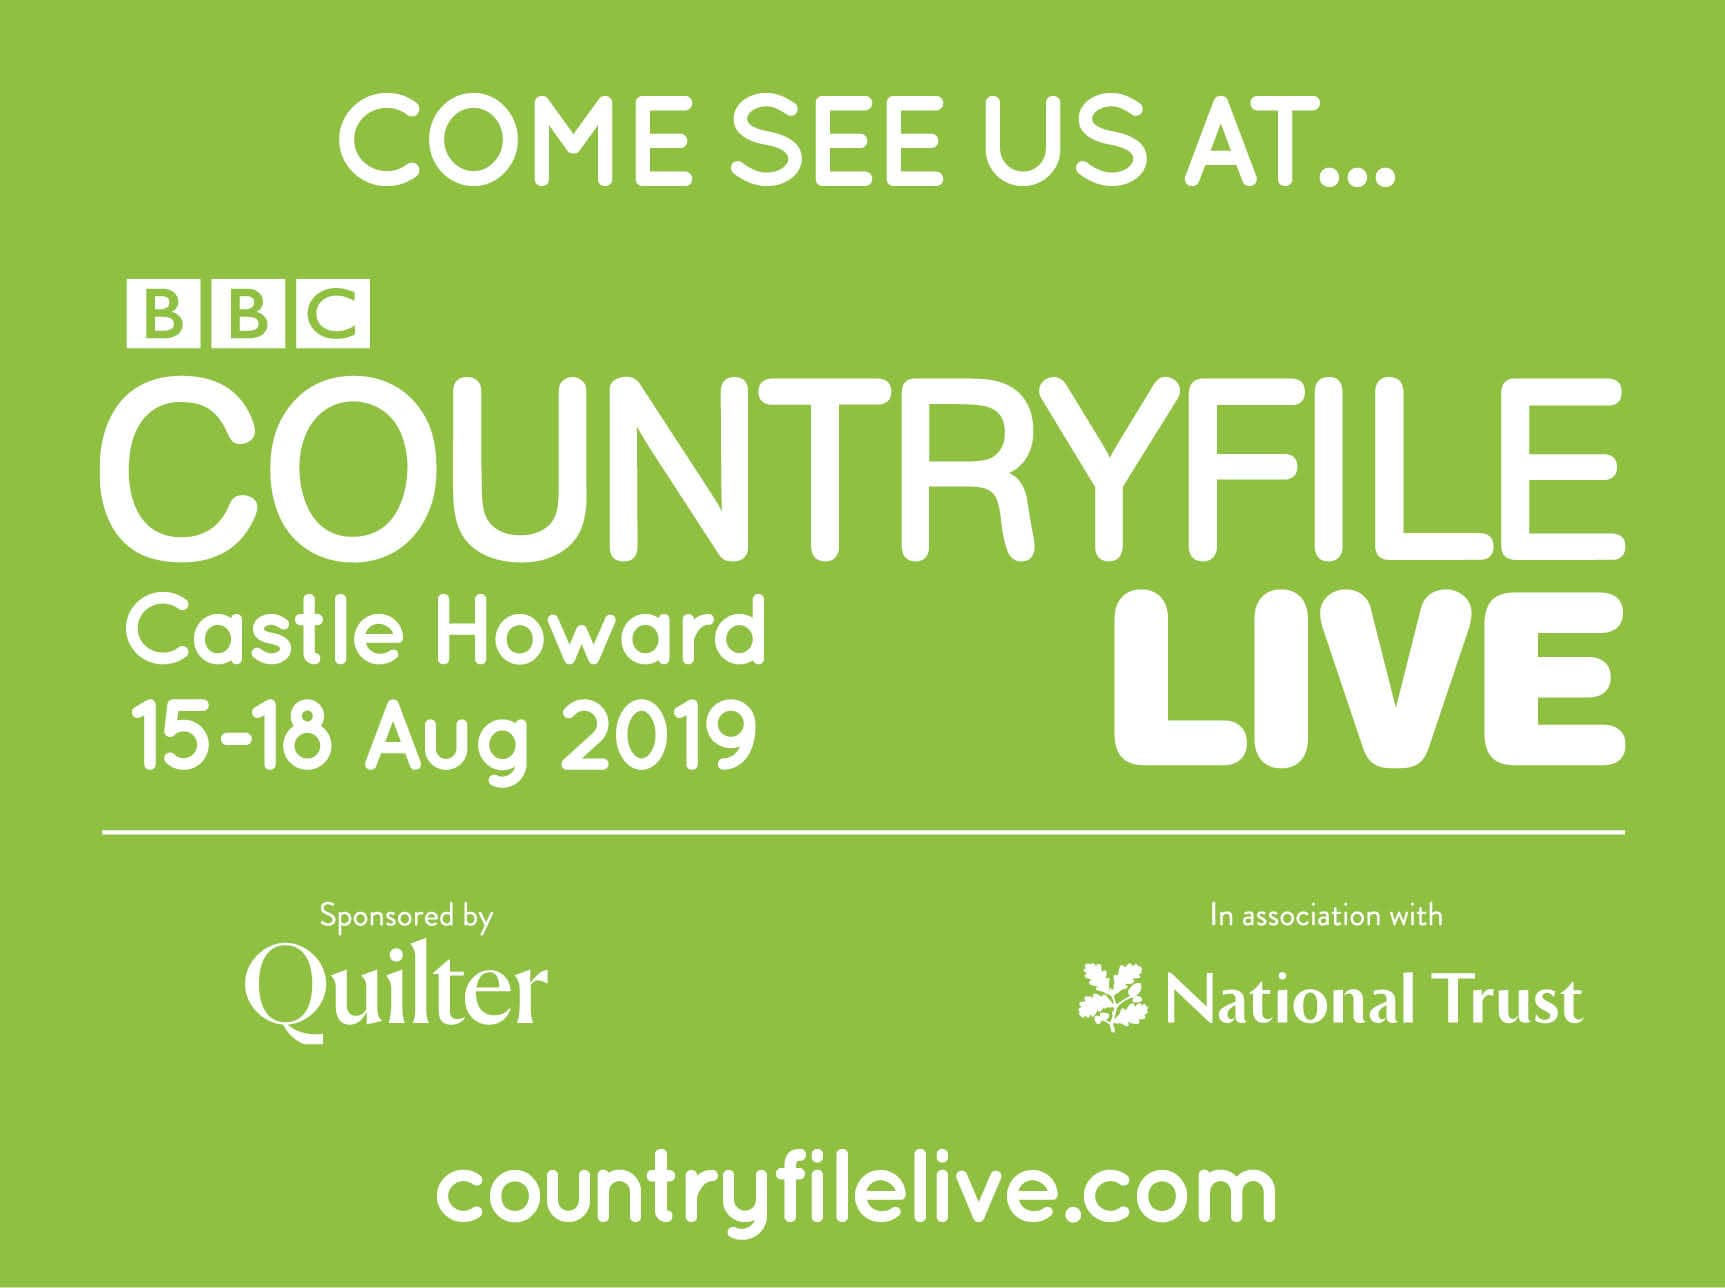 Garden fencing manufacturer at CountryFile Live exhibition in Castle Howard